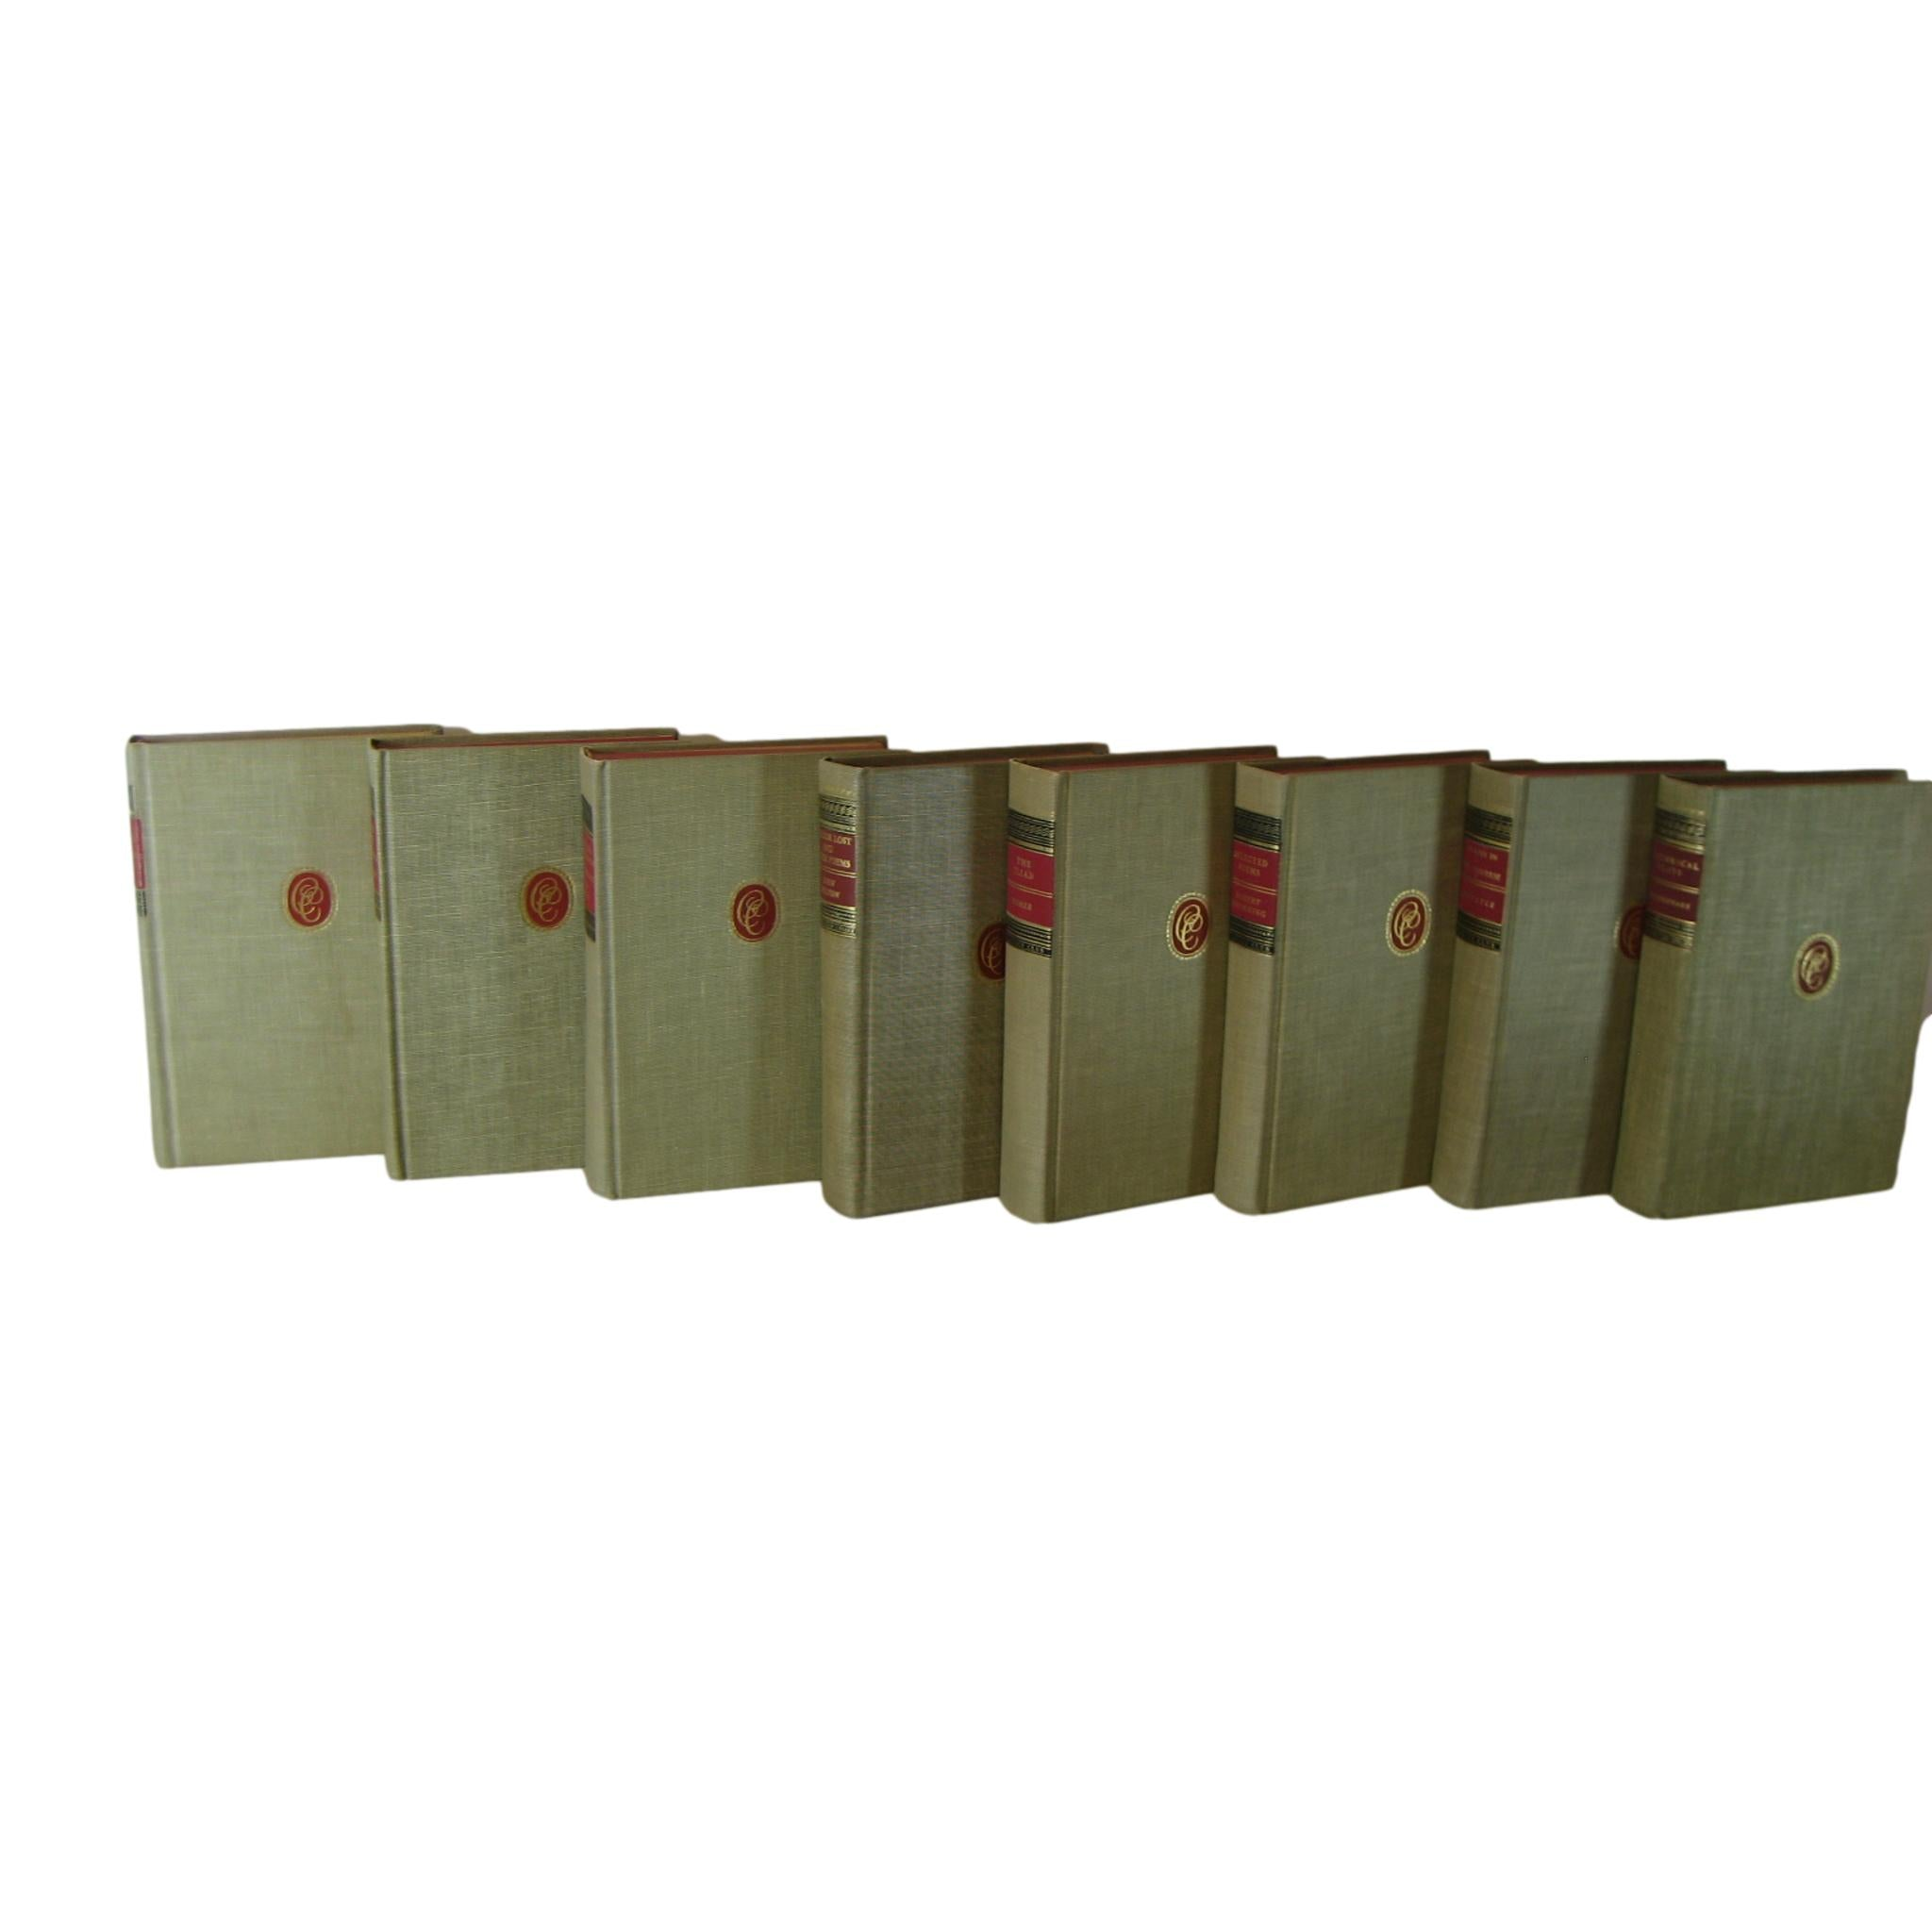 Vintage Decorative Classic Club Books for  Home Decor  in Red and Oatmeal, S/8 - Decades of Vintage